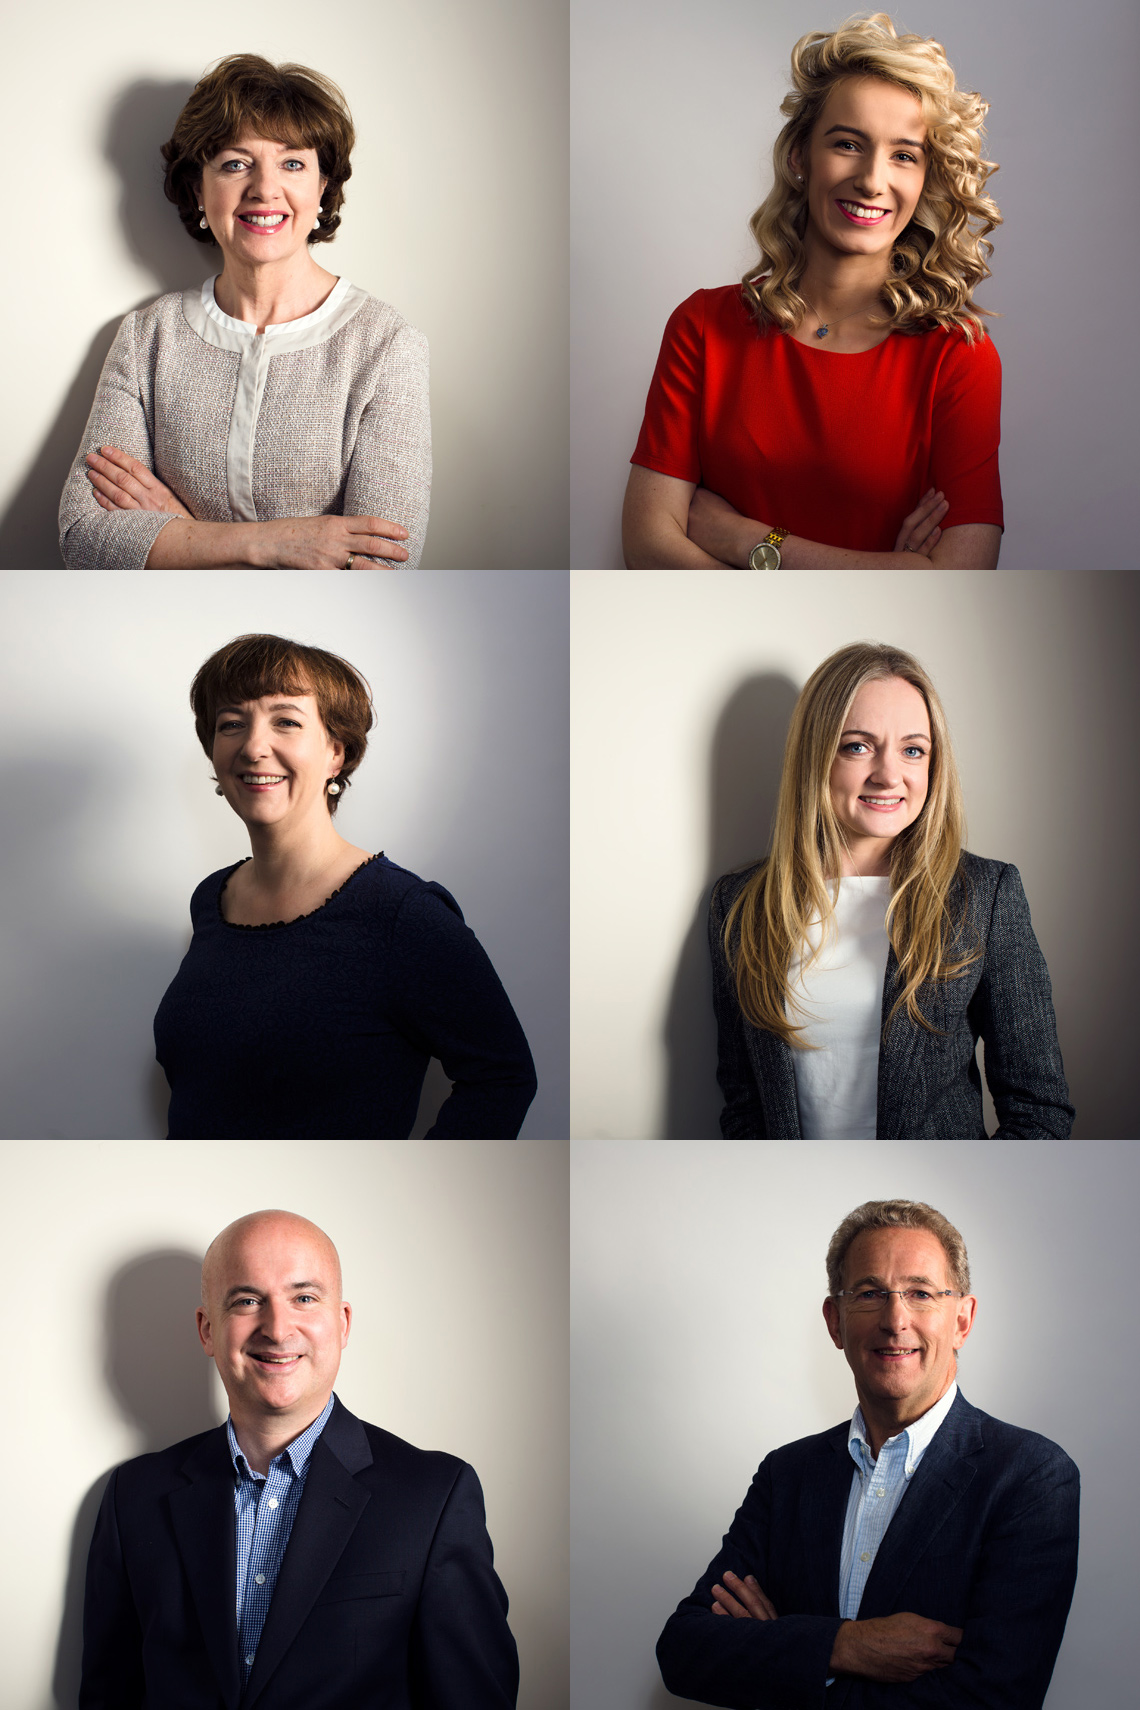 corporate portrait photography for nonprofit organisations